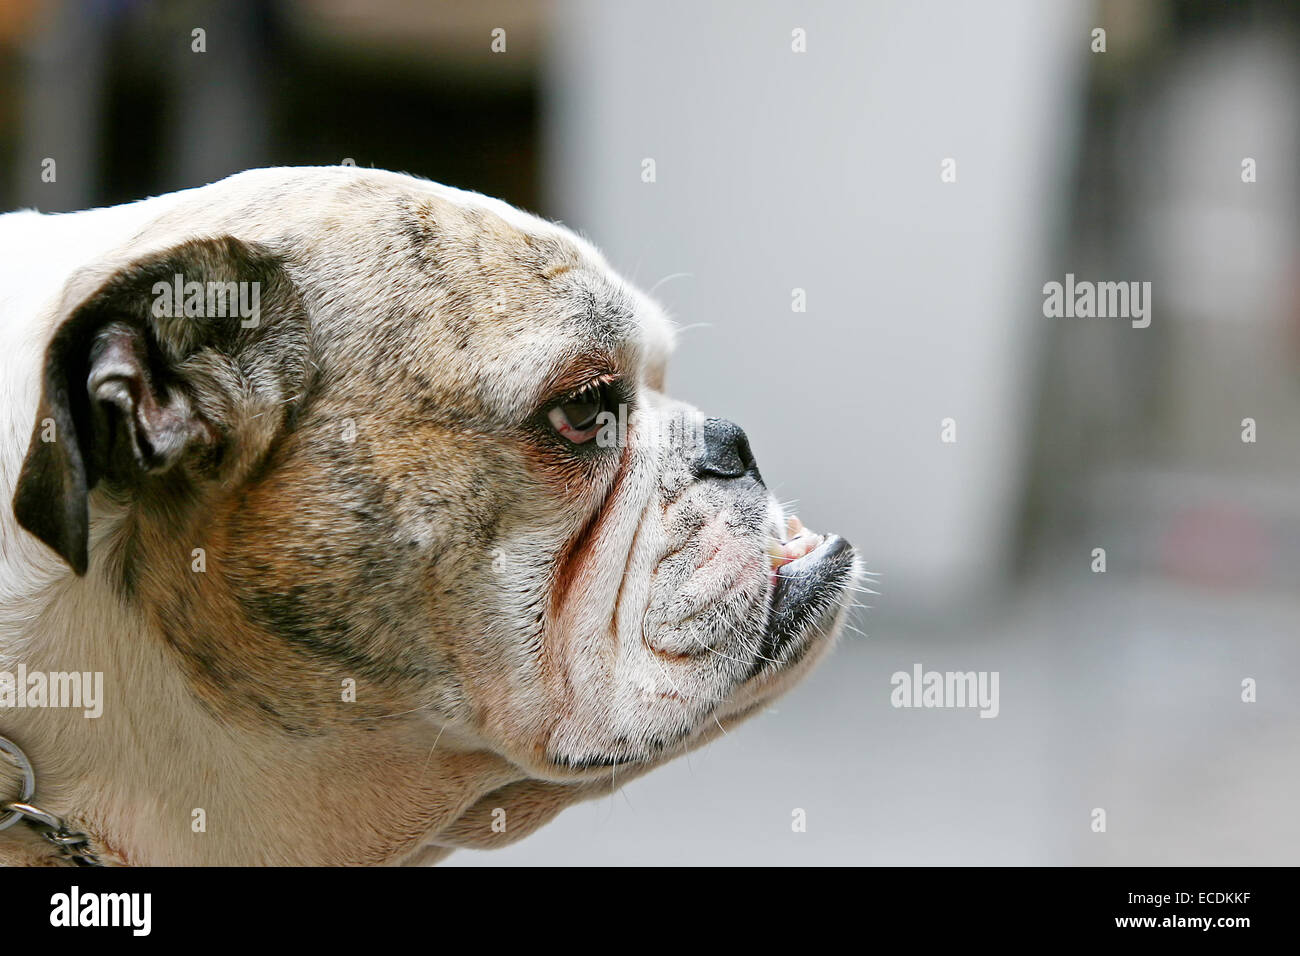 A close up of an old bulldog with visible canines. - Stock Image